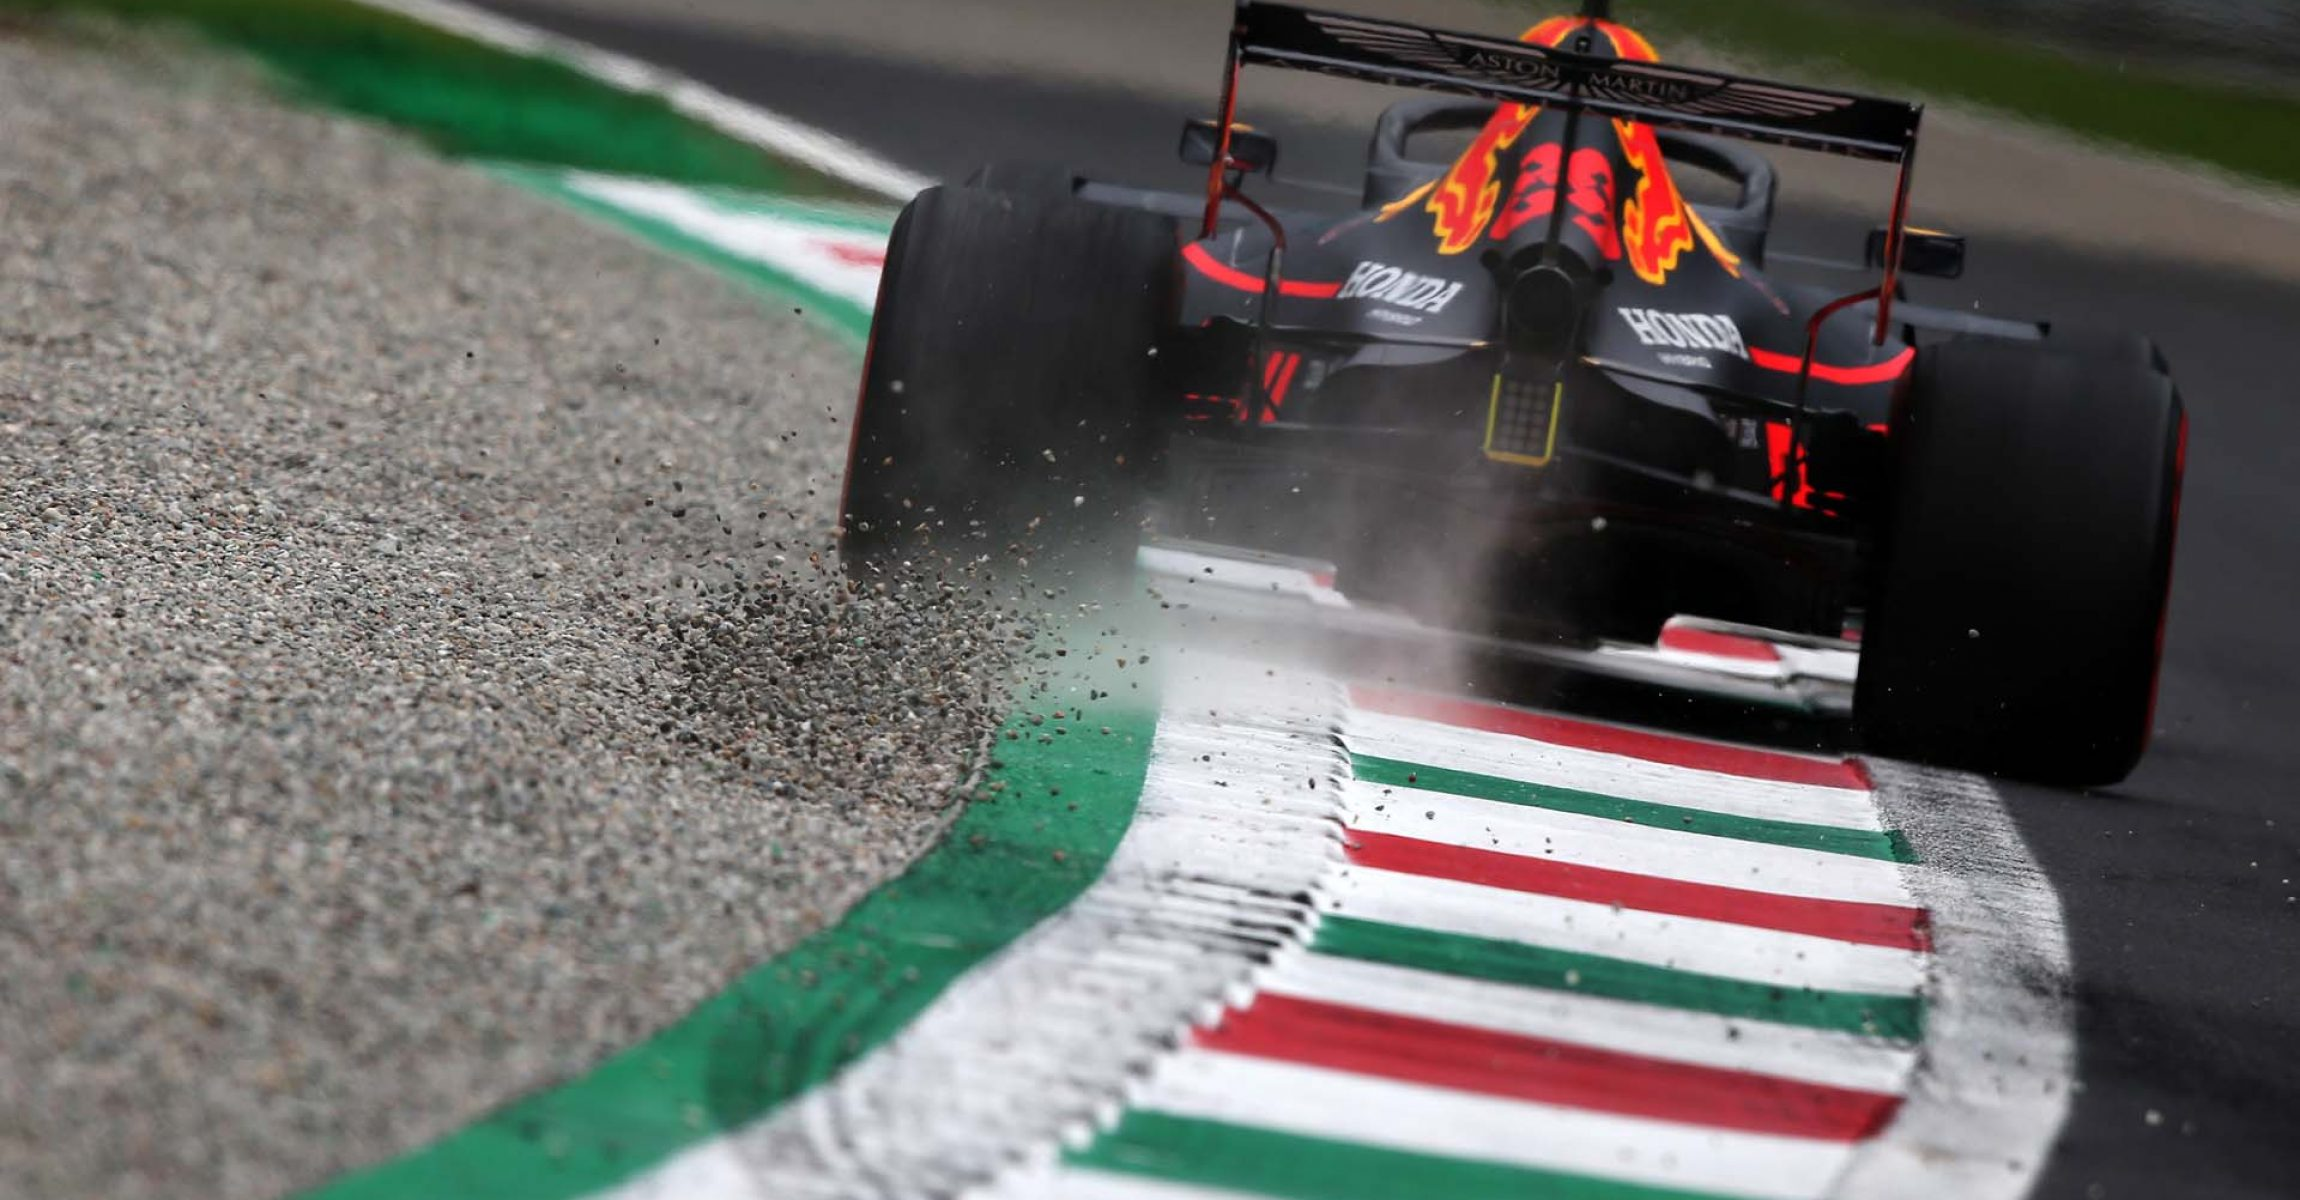 MONZA, ITALY - SEPTEMBER 06: Max Verstappen of the Netherlands driving the (33) Aston Martin Red Bull Racing RB15 runs wide during practice for the F1 Grand Prix of Italy at Autodromo di Monza on September 06, 2019 in Monza, Italy. (Photo by Charles Coates/Getty Images) // Getty Images / Red Bull Content Pool // AP-21G69W1KH2111 // Usage for editorial use only //